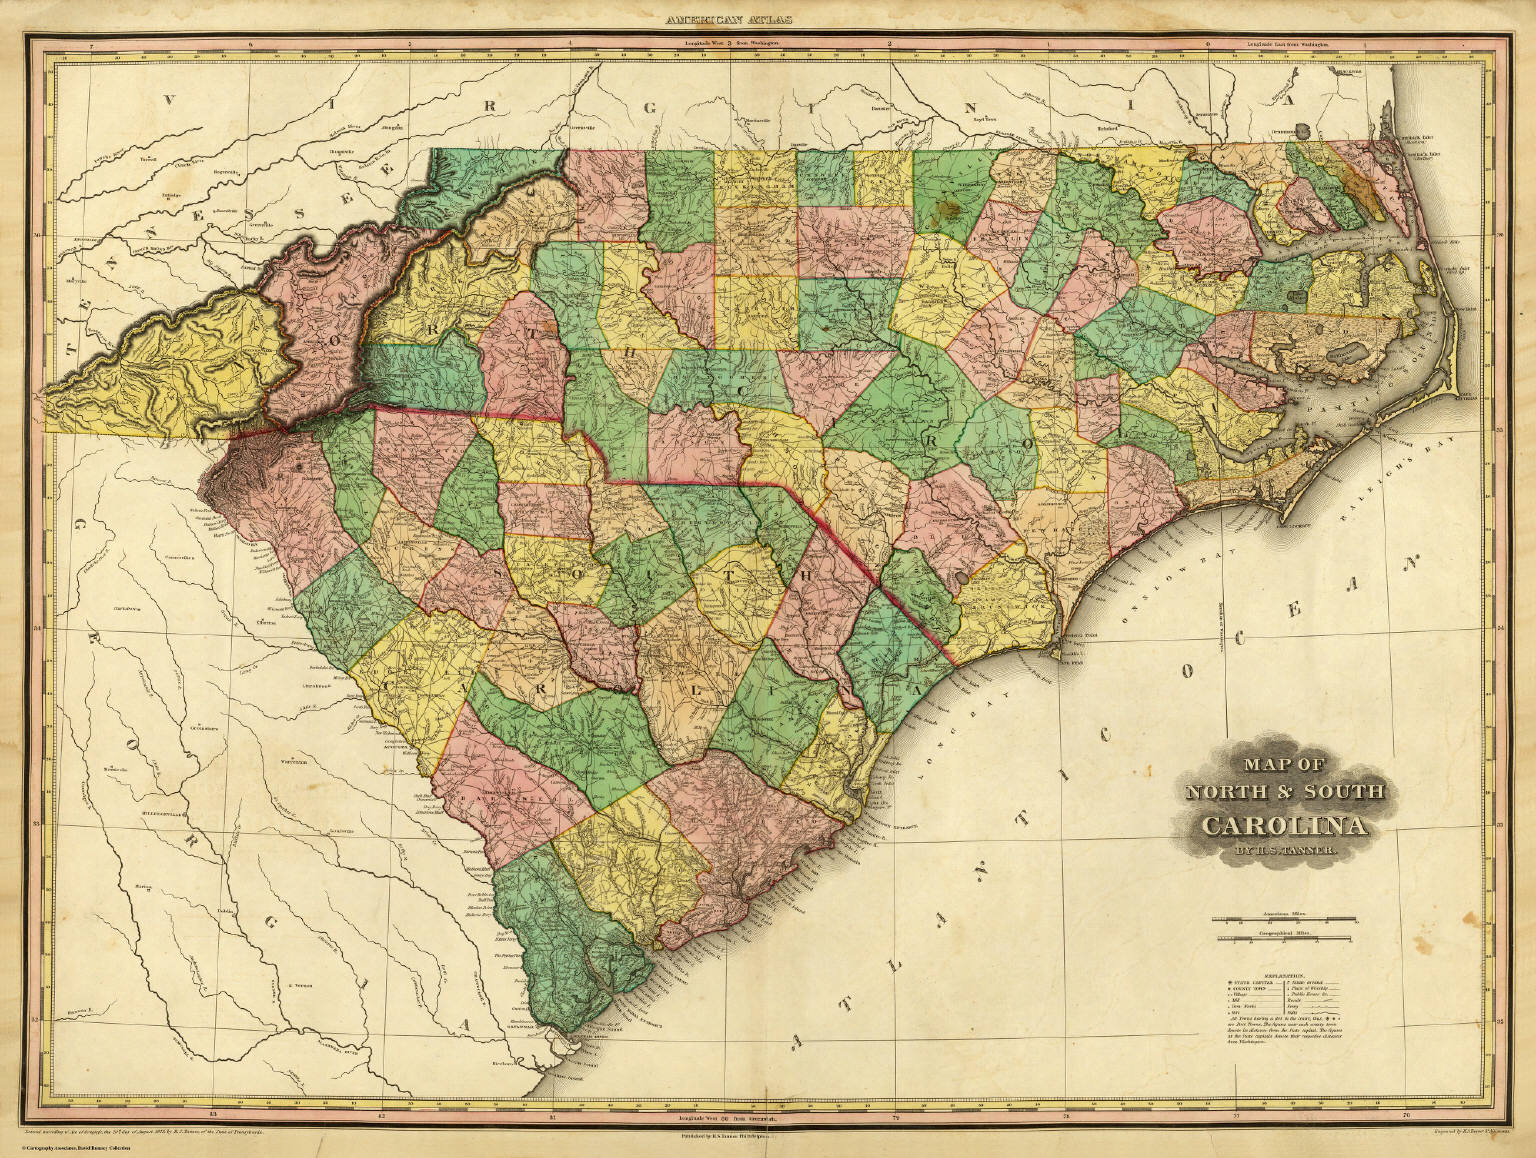 Map of North & South Carolina. - David Rumsey Historical Map Collection